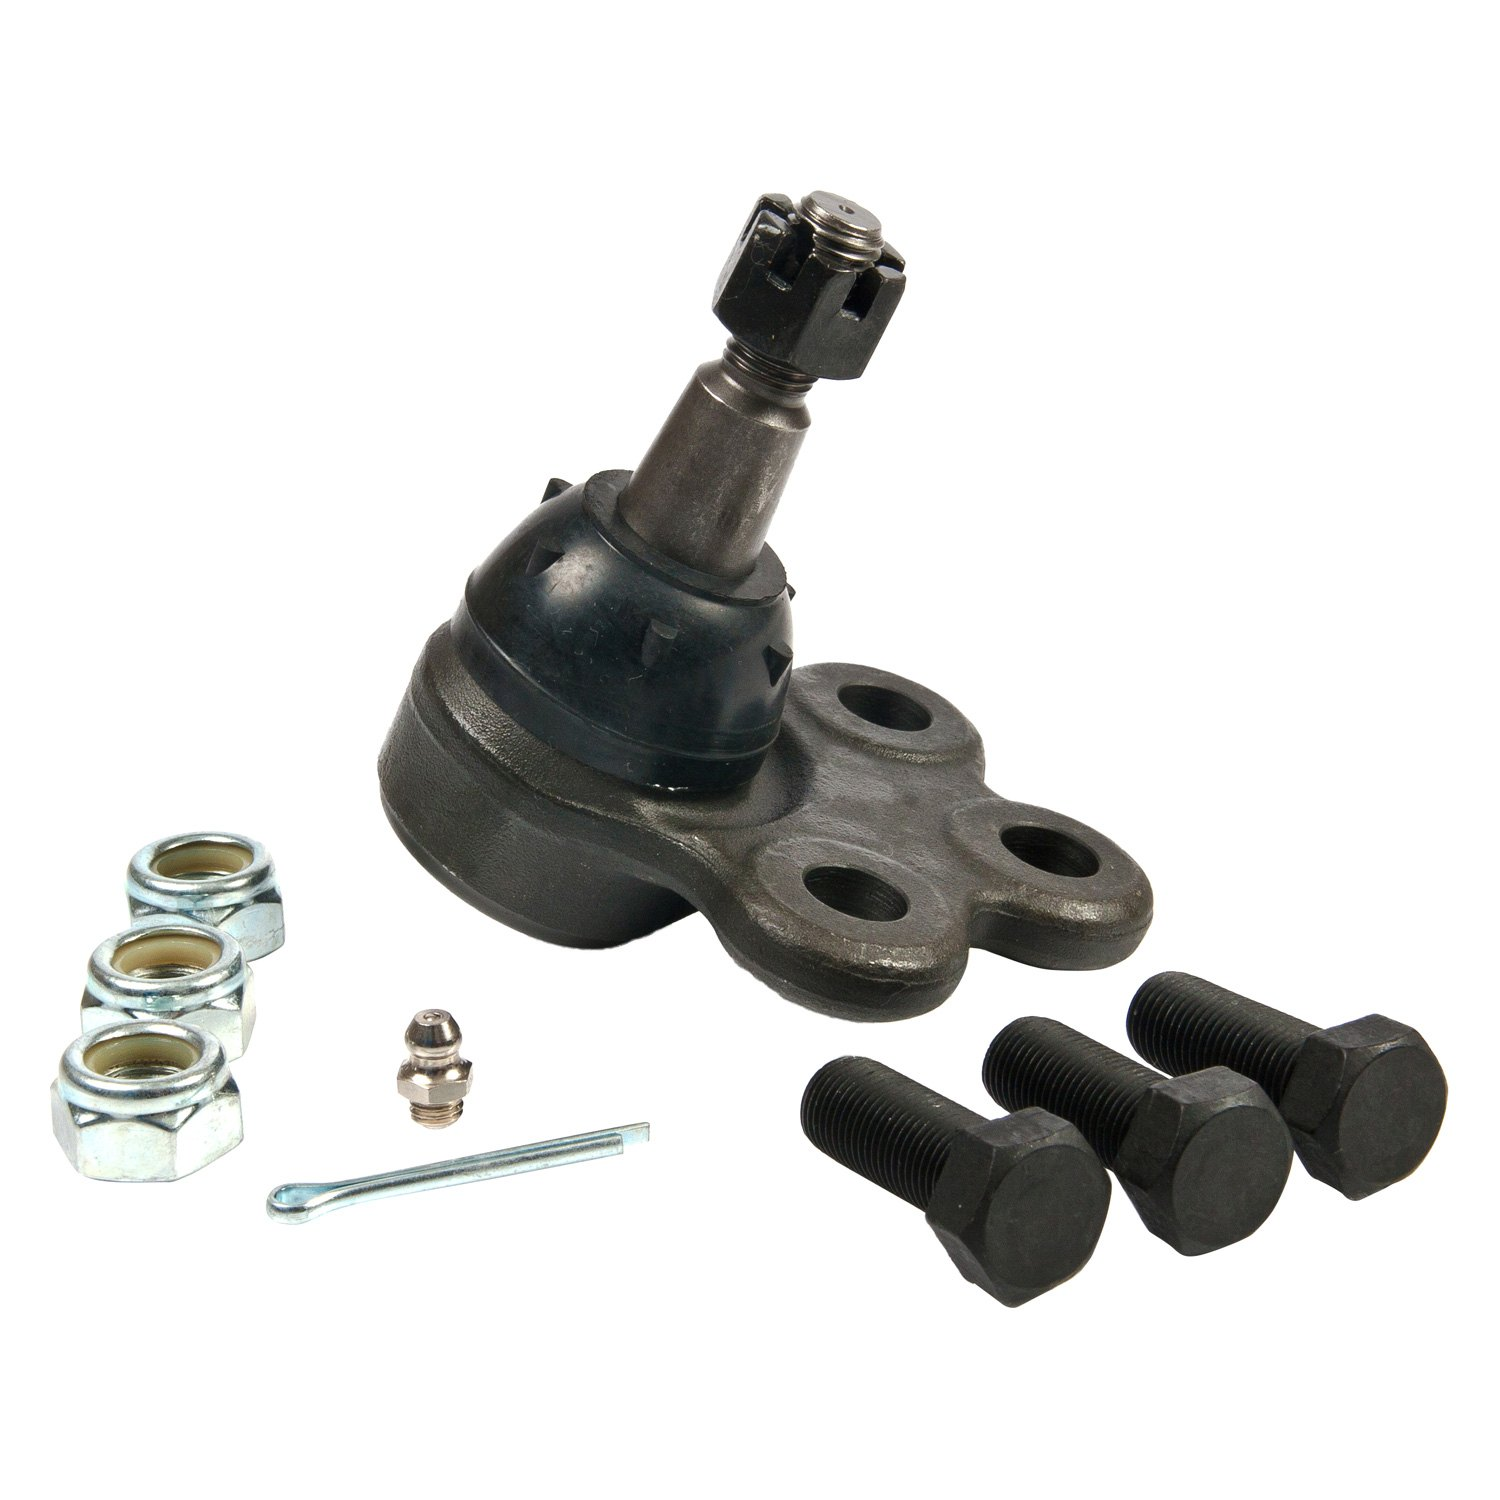 1997 Cadillac Deville Parts: Cadillac Deville 1997-1999 Ball Joint